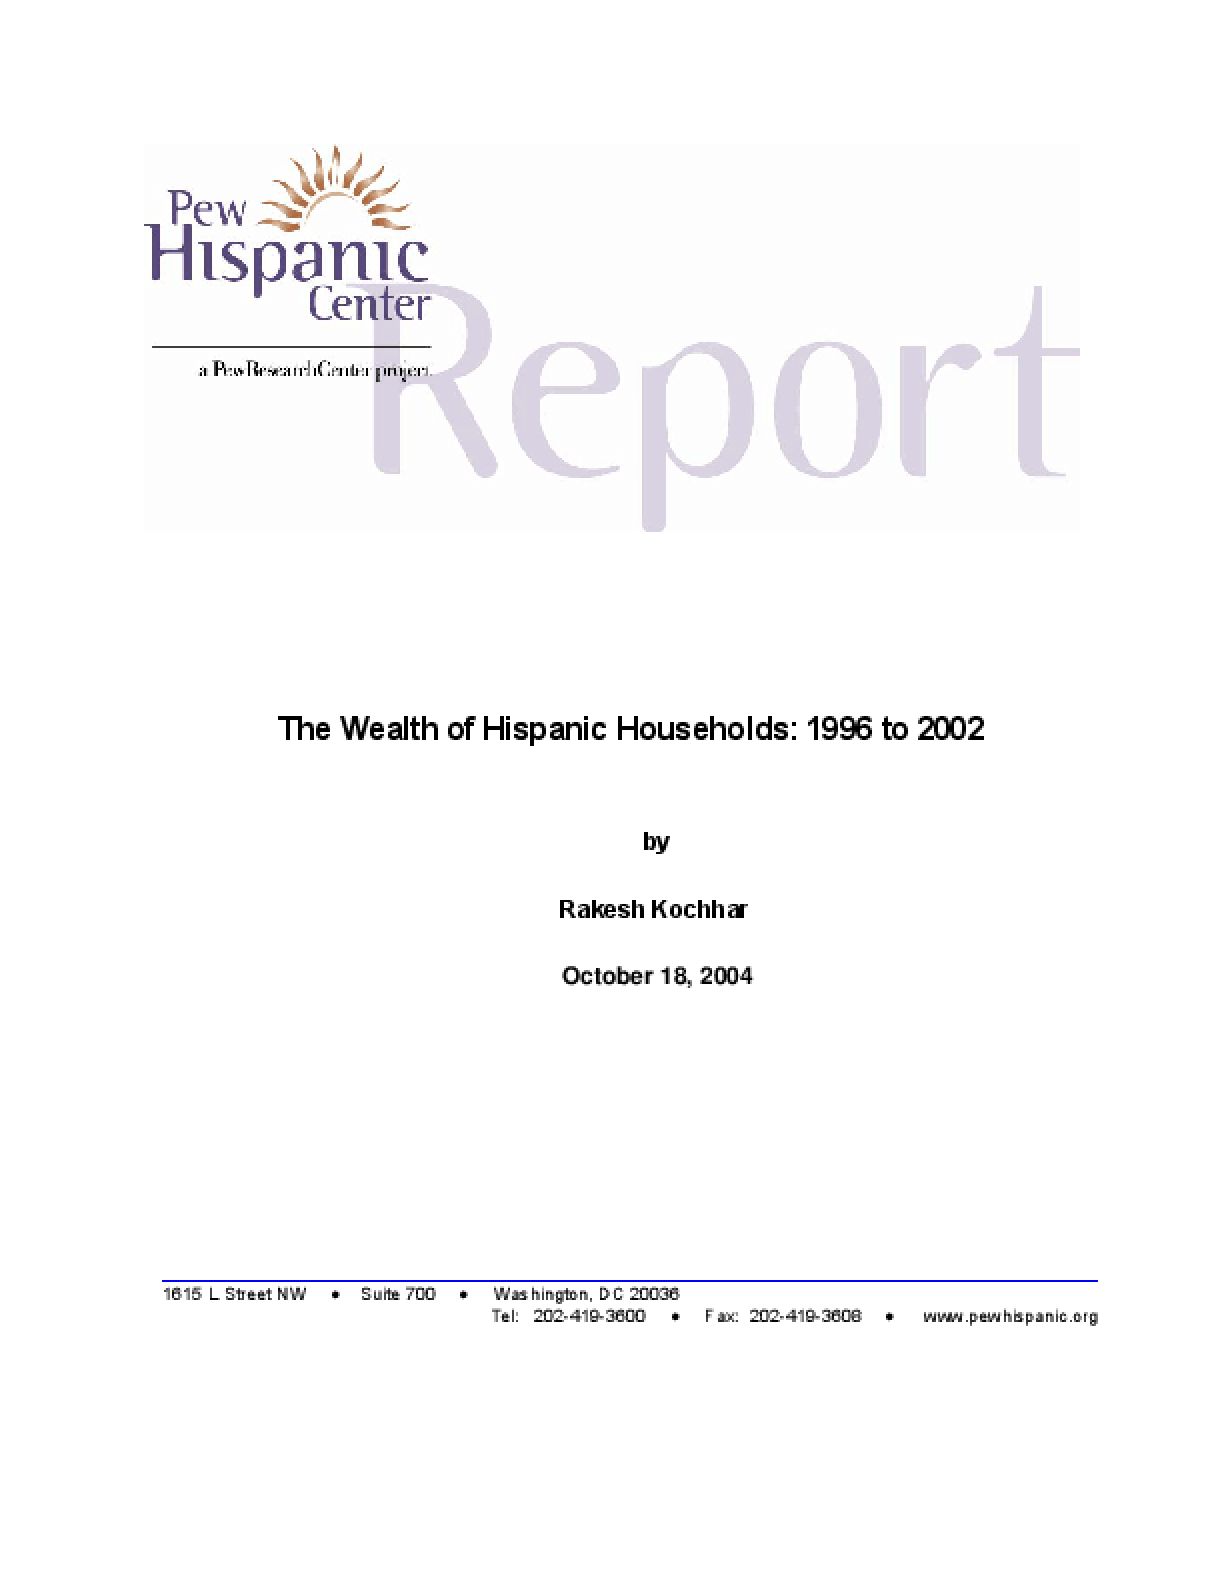 The Wealth of Hispanic Households: 1996 - 2002